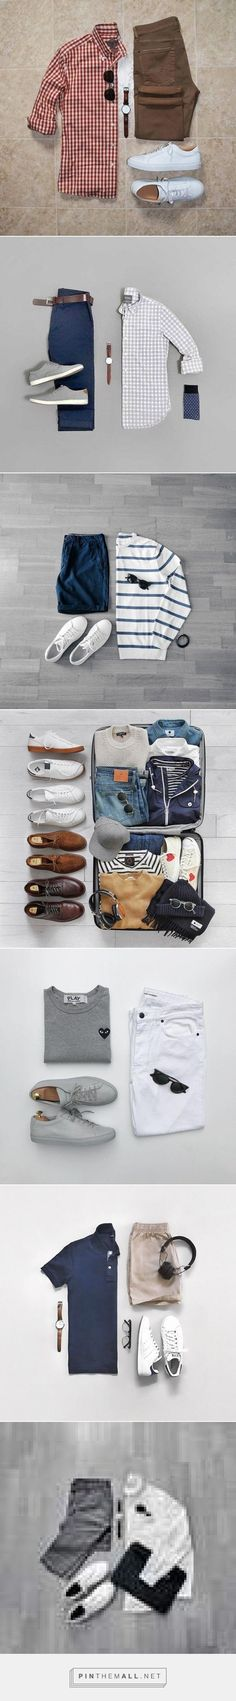 OUTFIT GRIDS FOR MEN #mensfashion #fashion